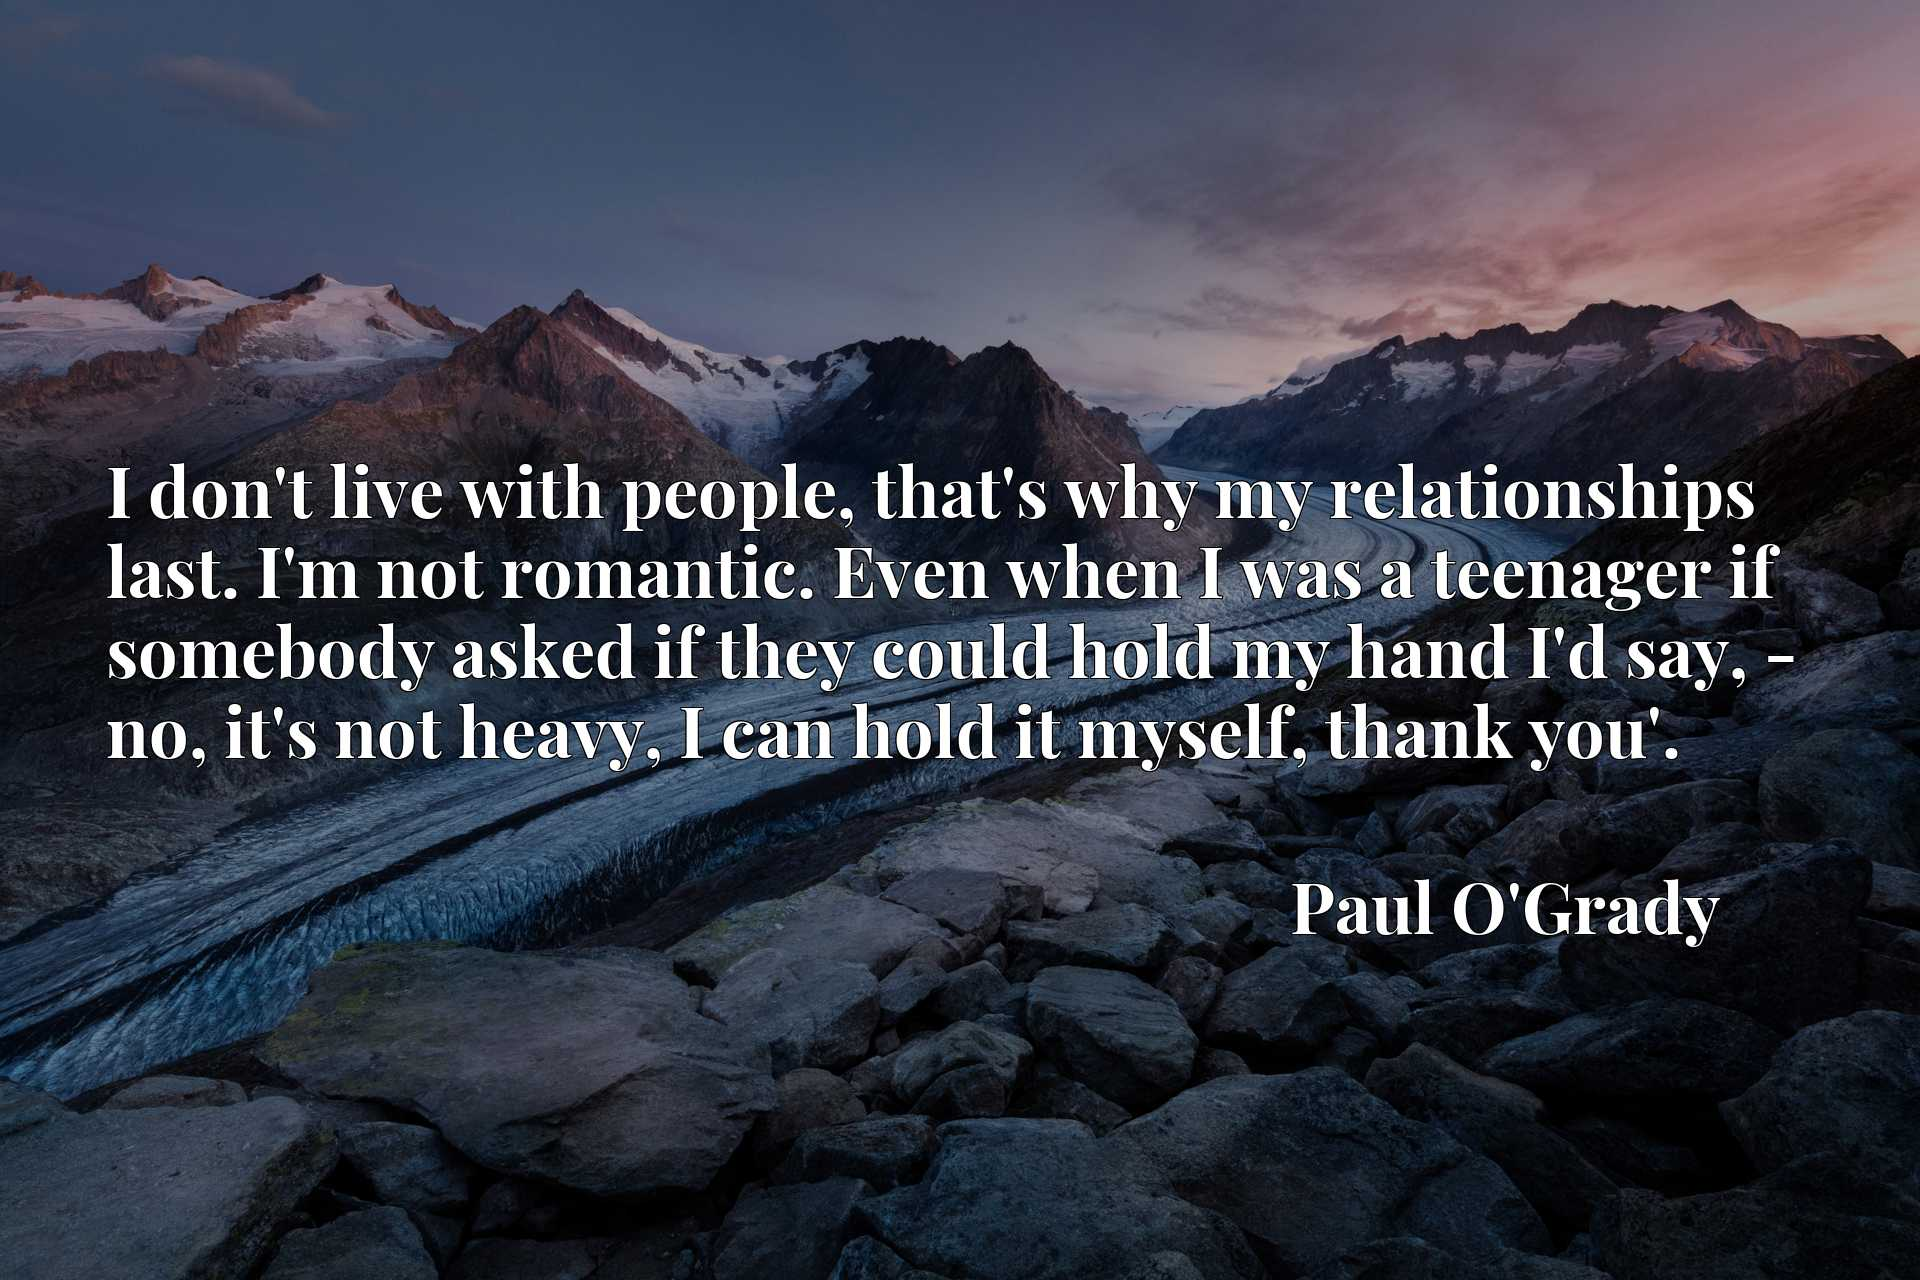 I don't live with people, that's why my relationships last. I'm not romantic. Even when I was a teenager if somebody asked if they could hold my hand I'd say, - no, it's not heavy, I can hold it myself, thank you'.